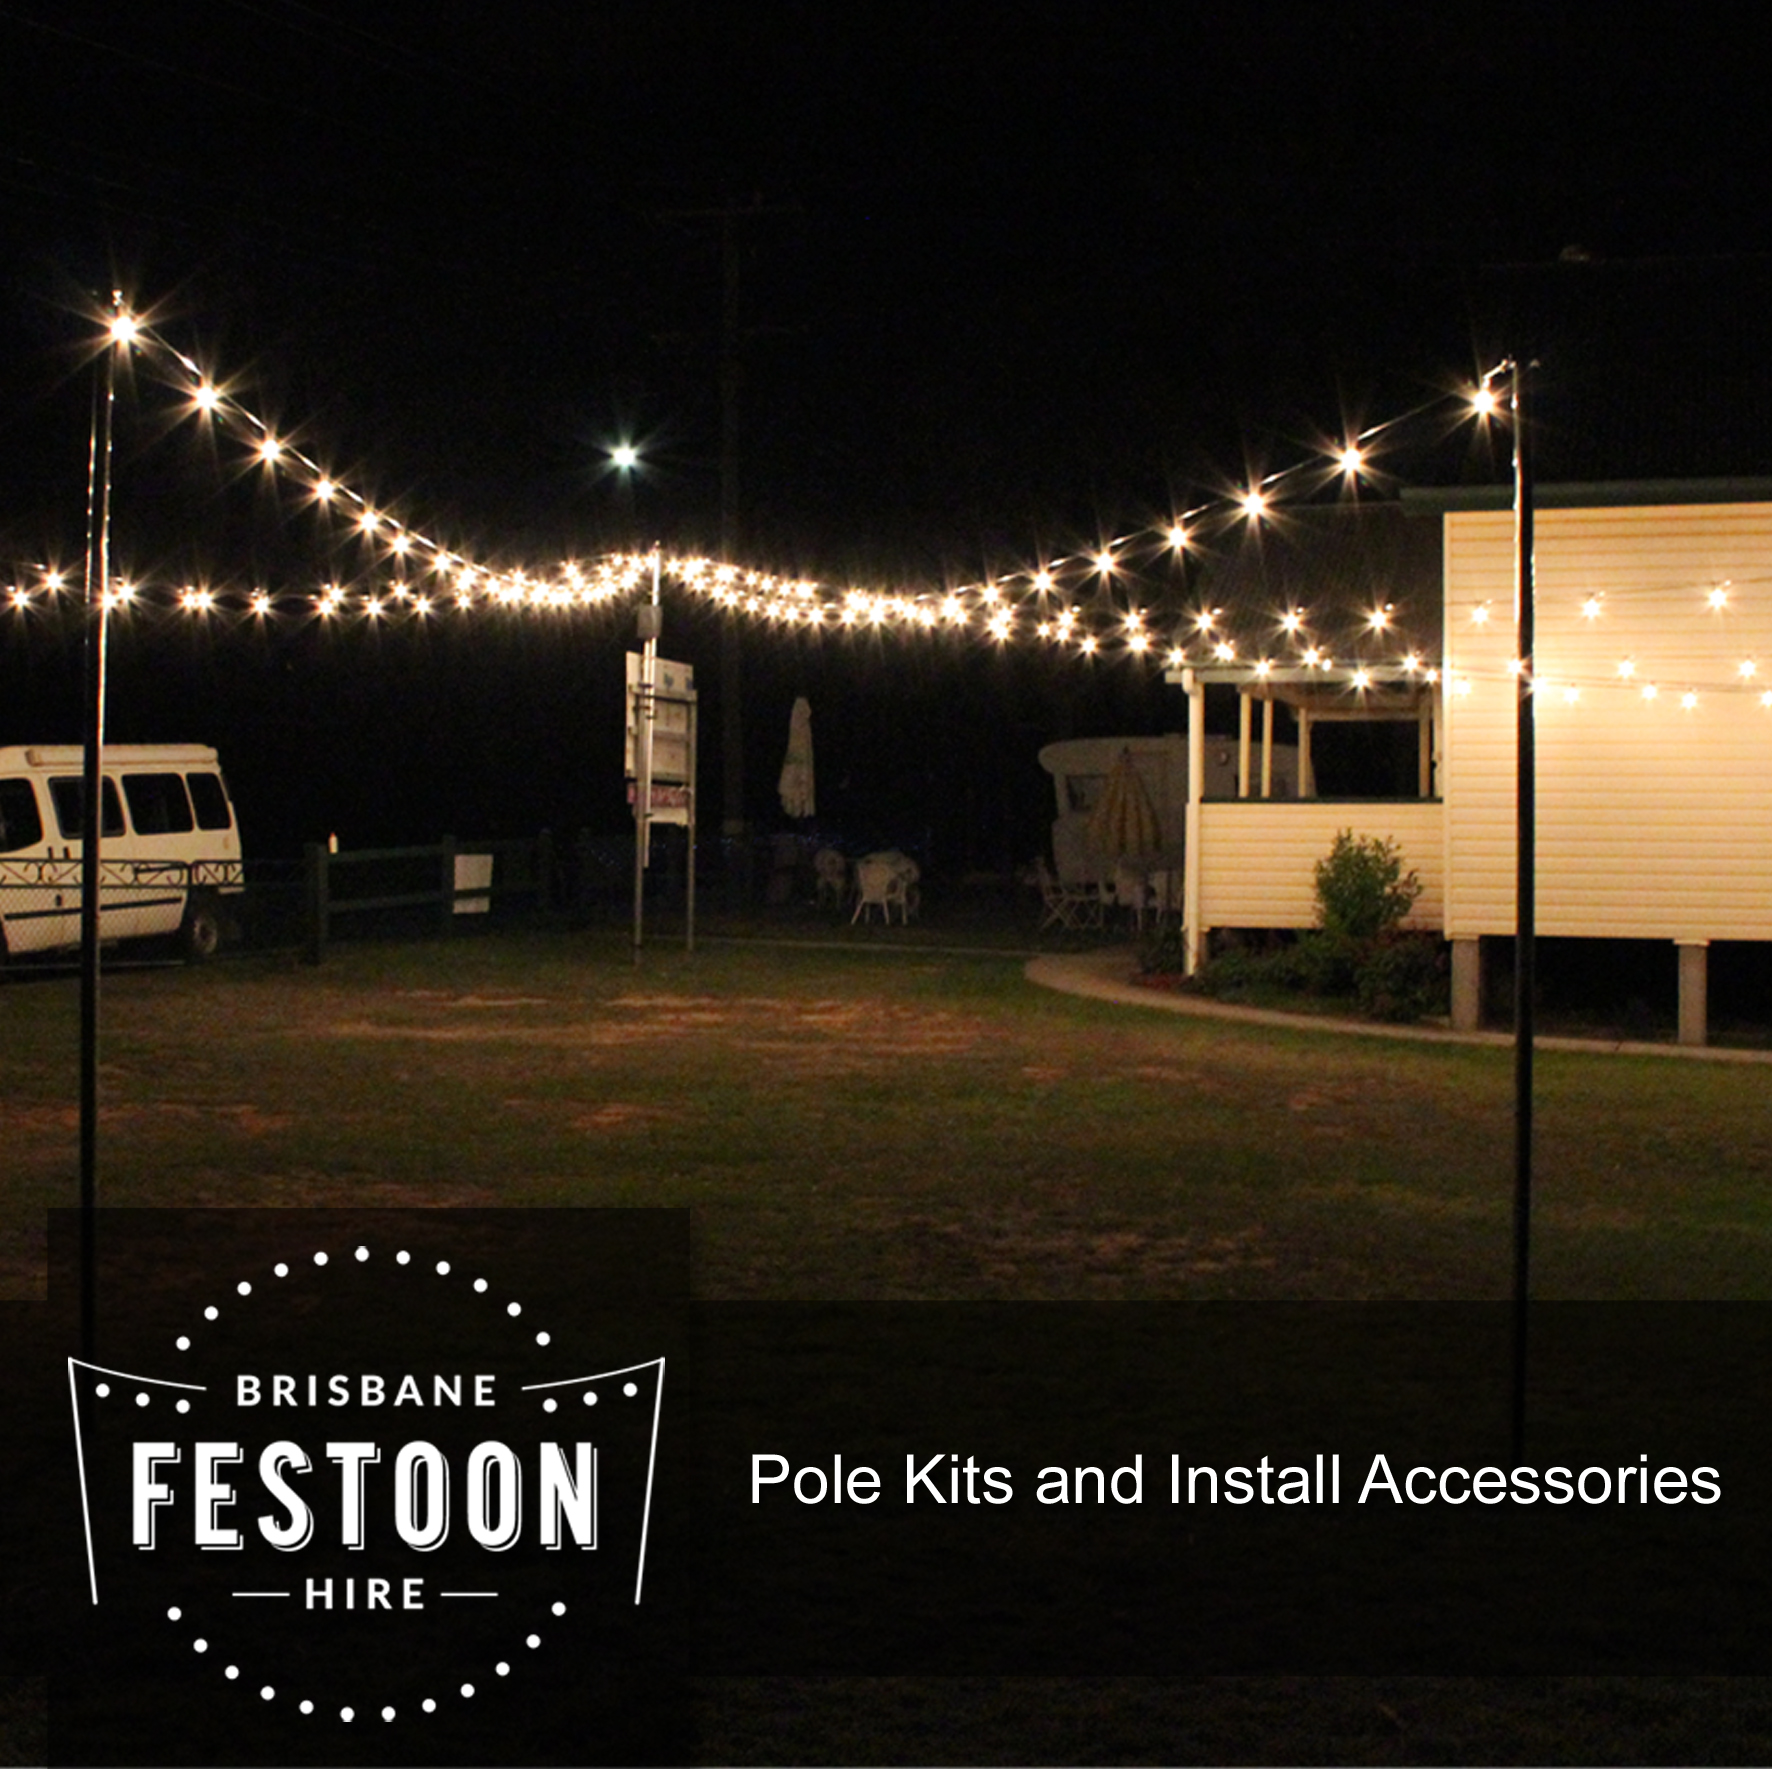 Brisbane Festoon Hire - Pole Kits and Install Accessories 3.jpg